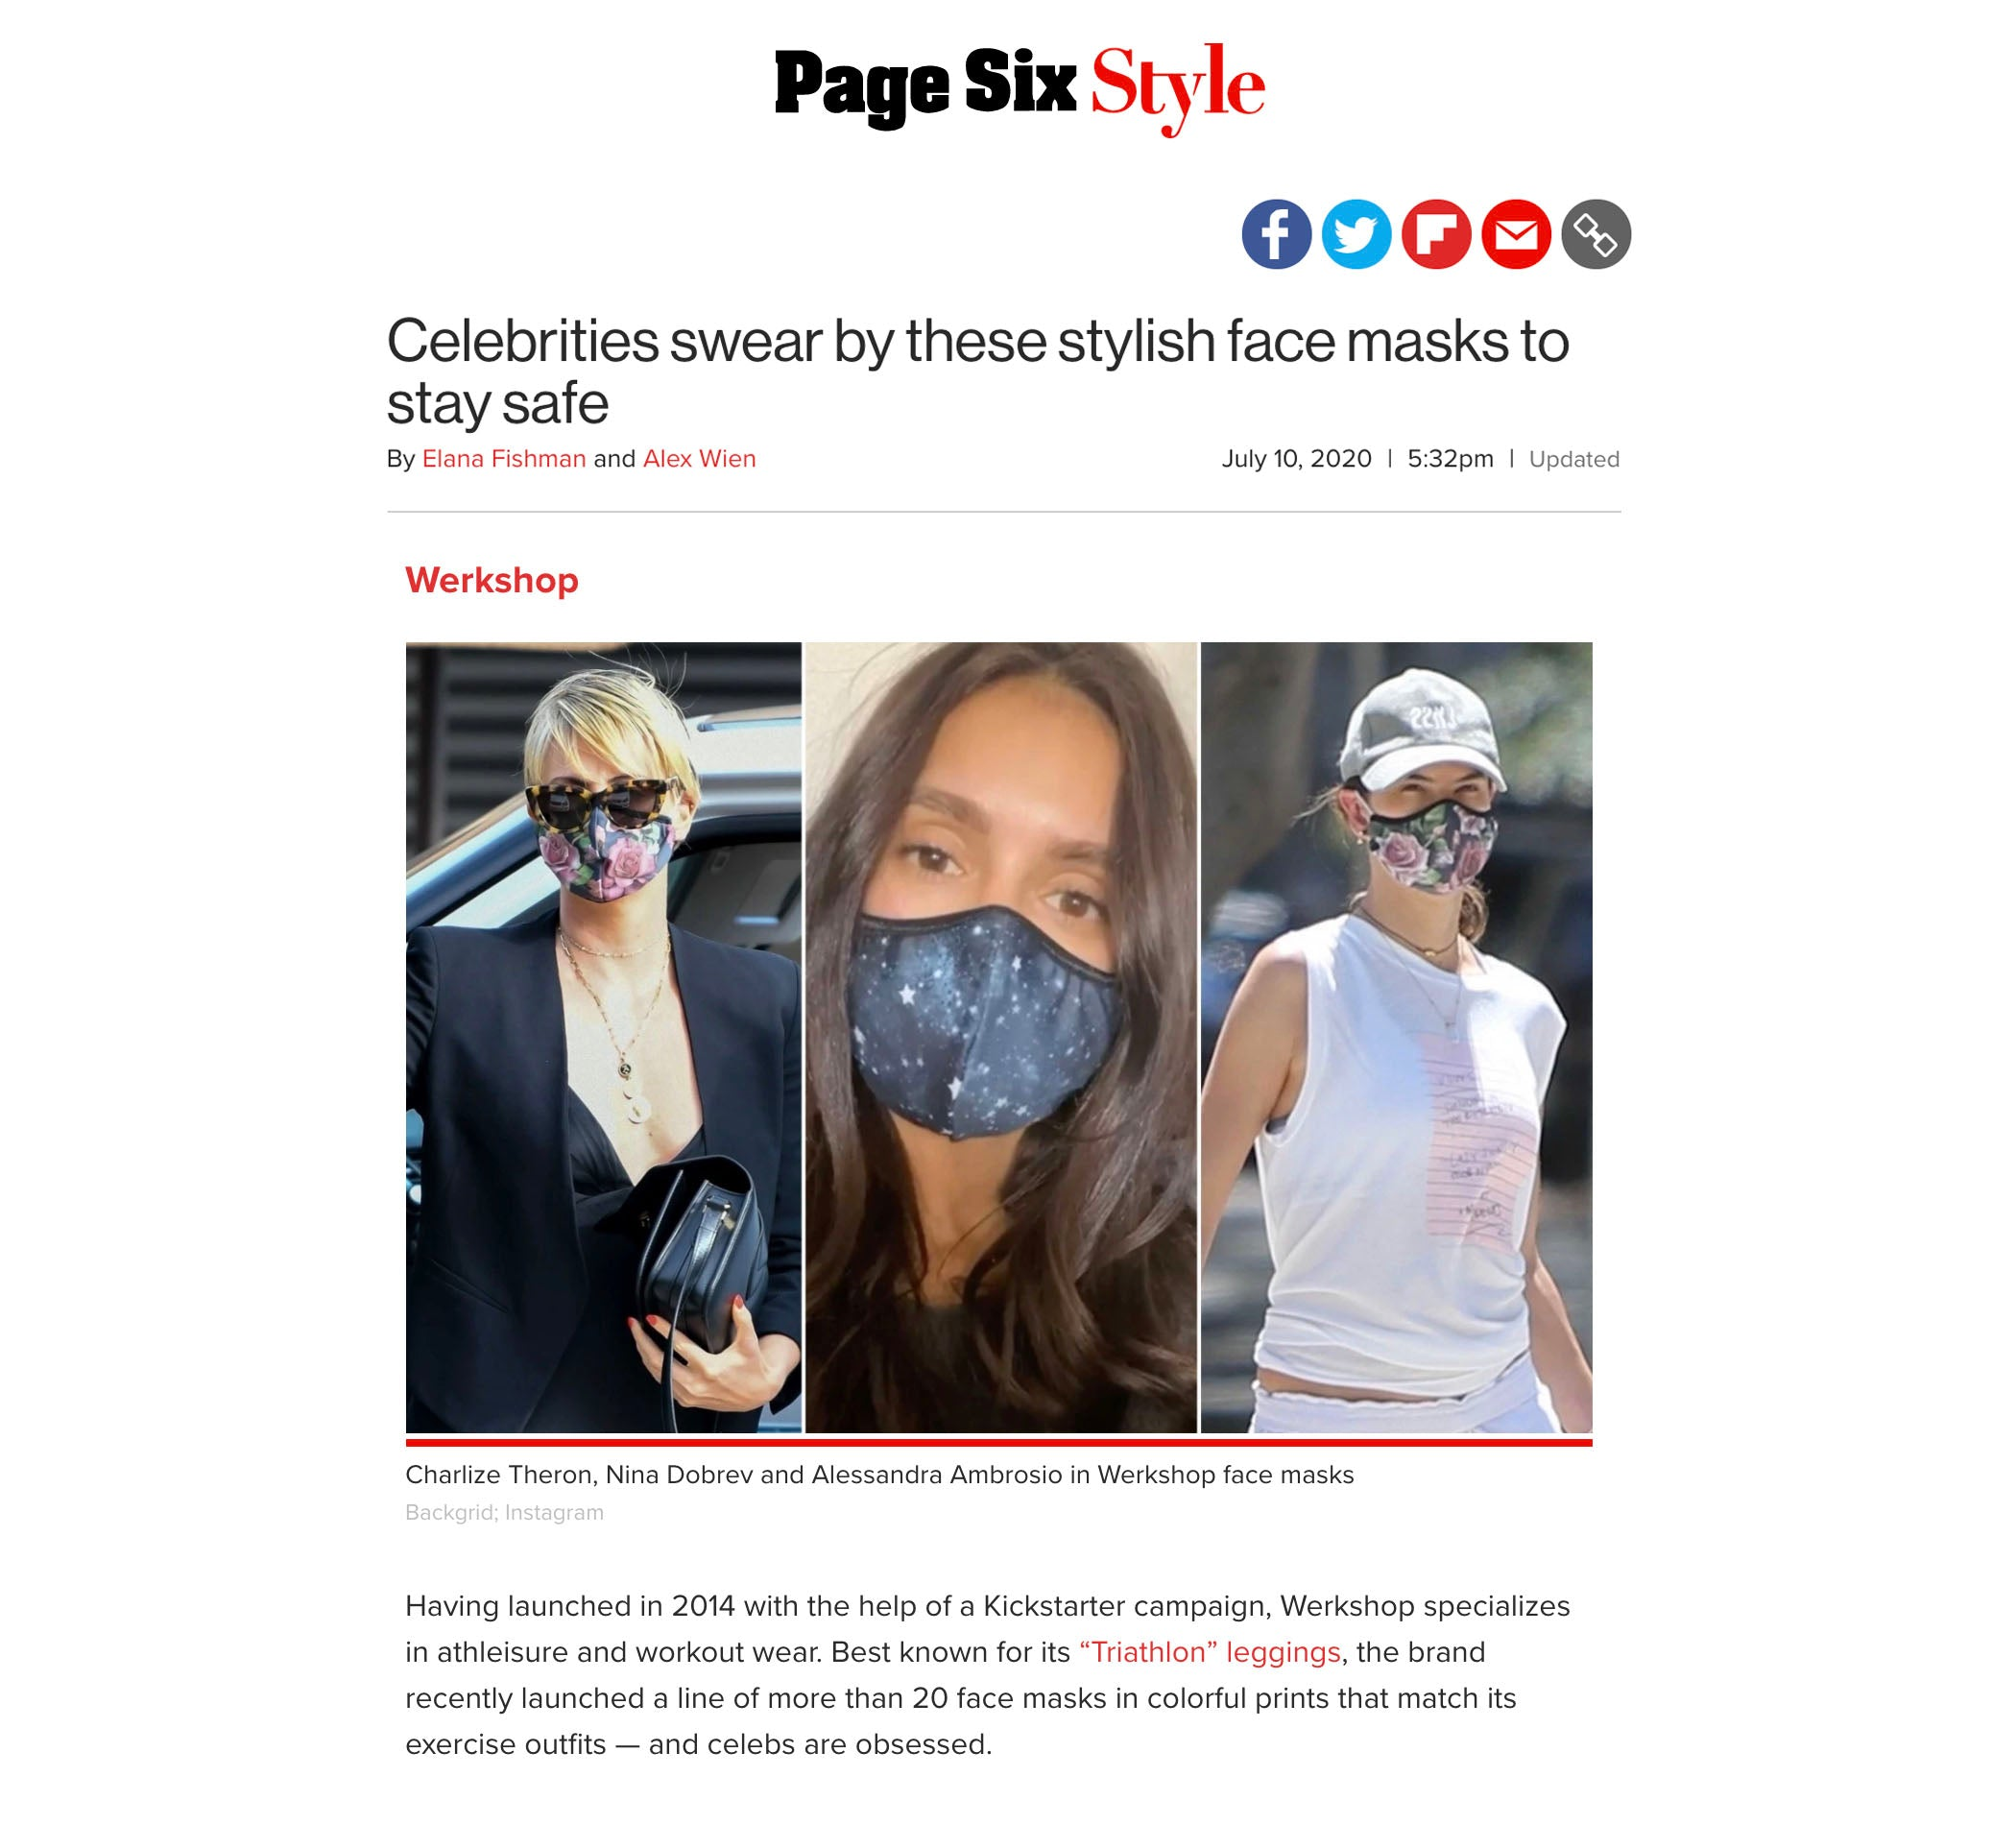 Charlize Theron, Nina Dobrev and Alessandra Ambrosio featured wearing WERKSHOP Face Masks in PageSix!